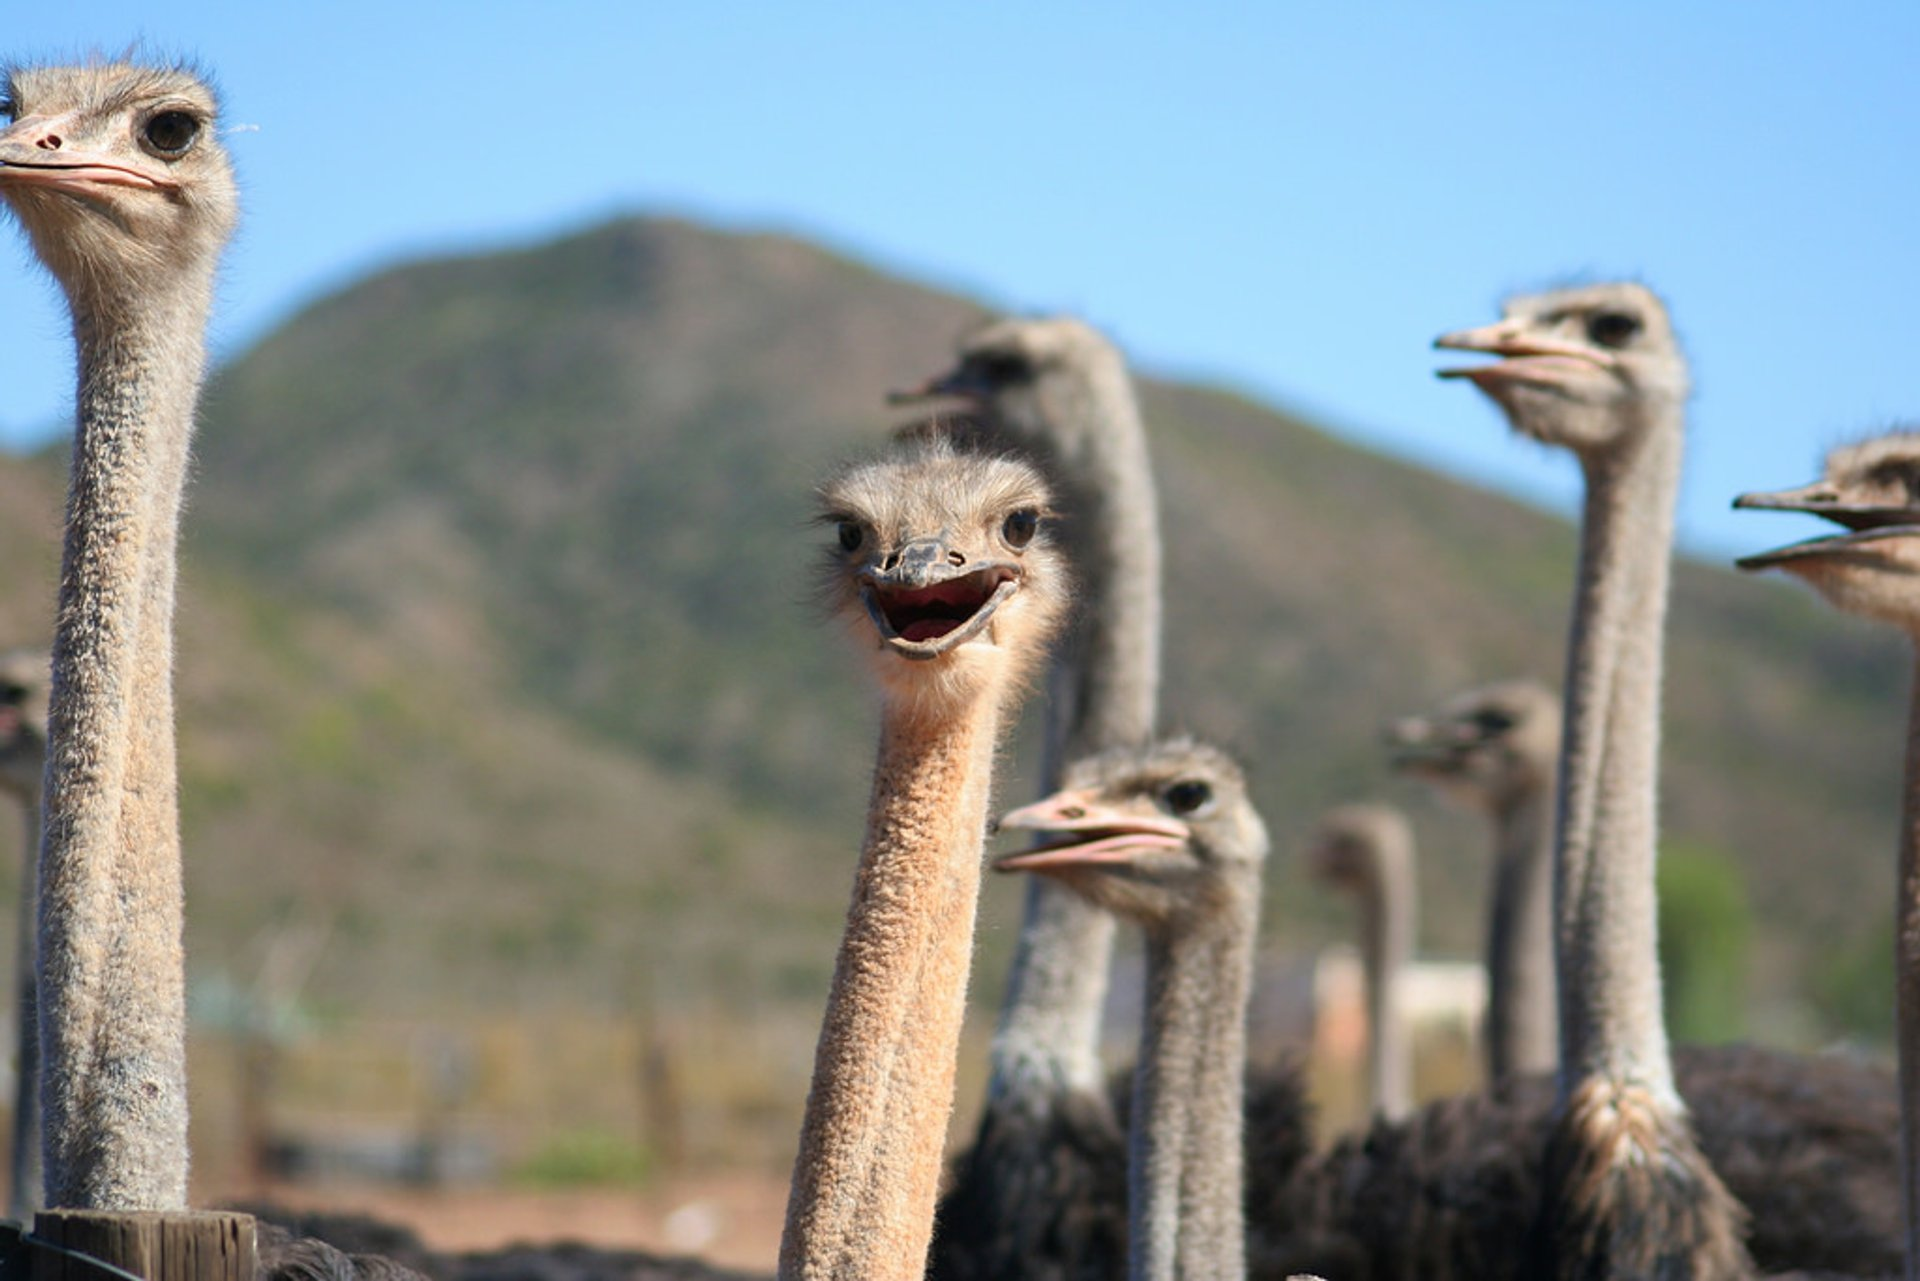 Oudtshoorn Ostriches in South Africa 2019 - Best Time